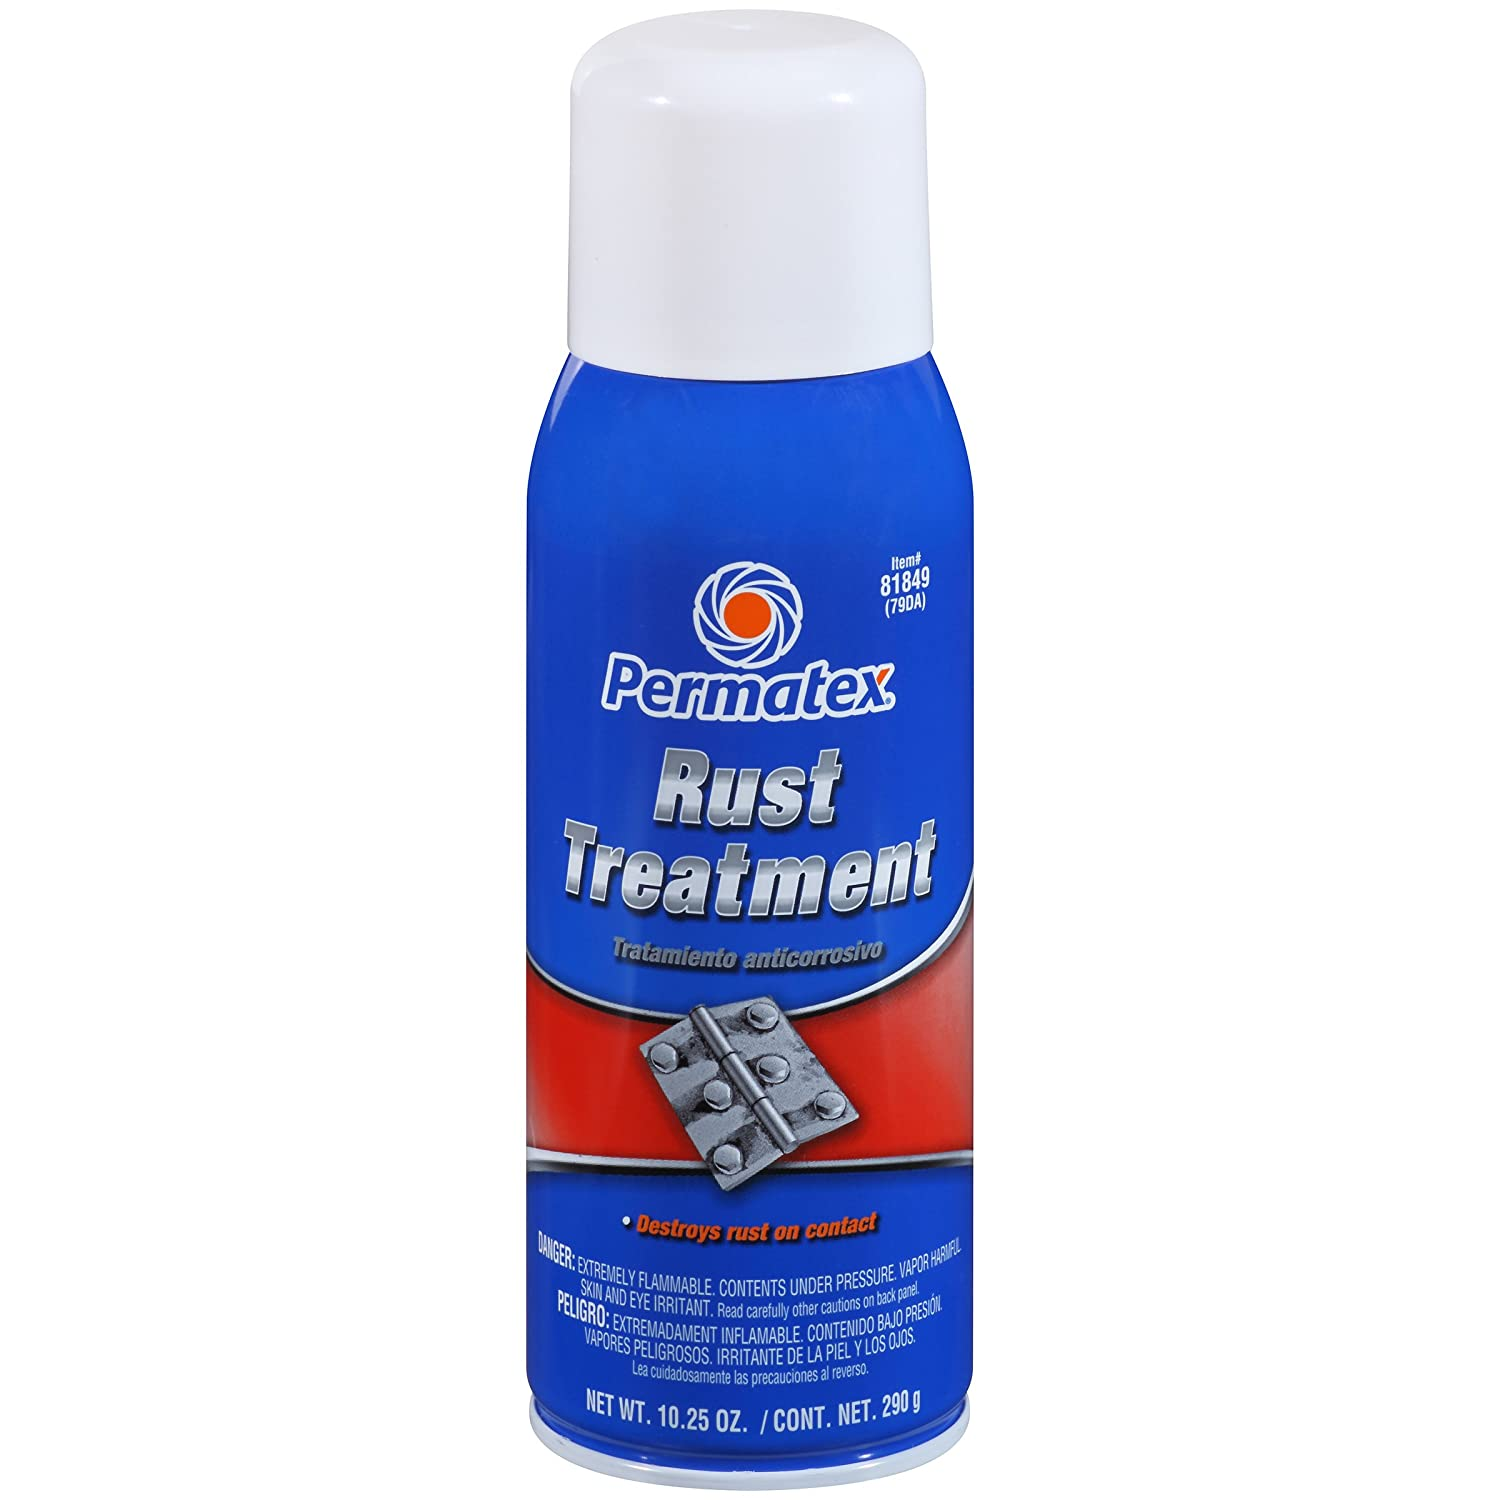 Permatex Rust Treatment}